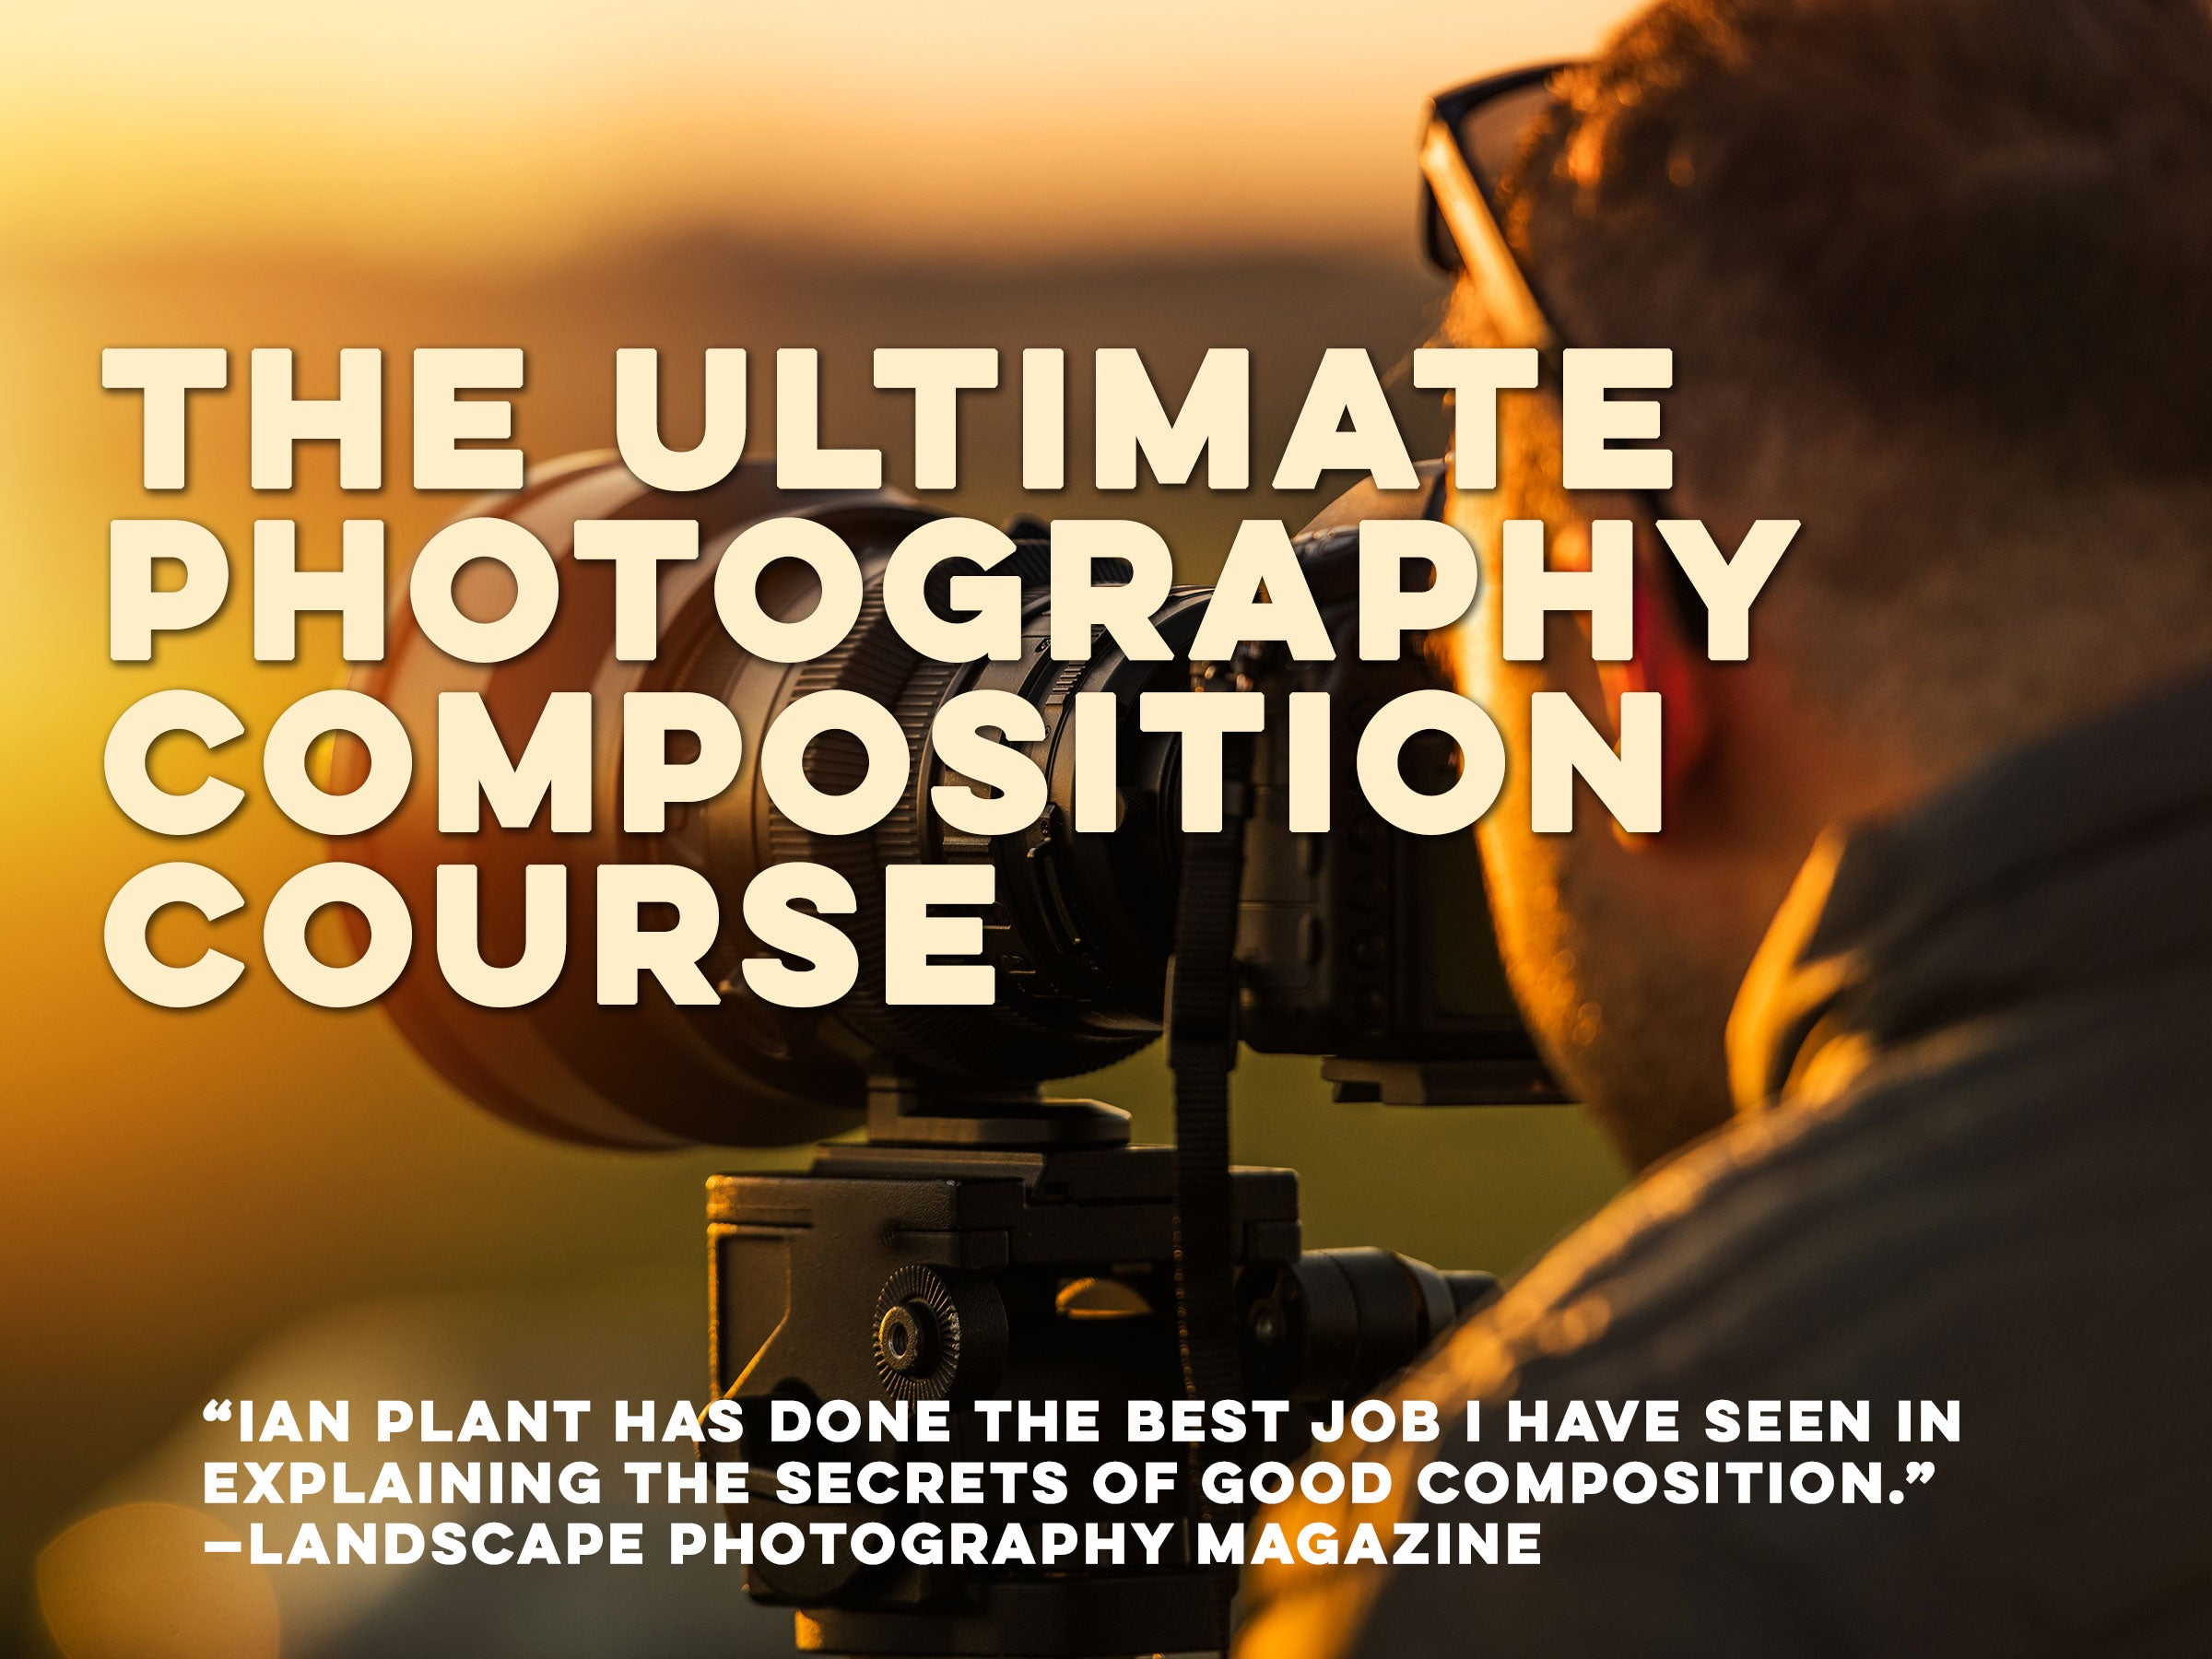 The Ultimate Photography Composition Course